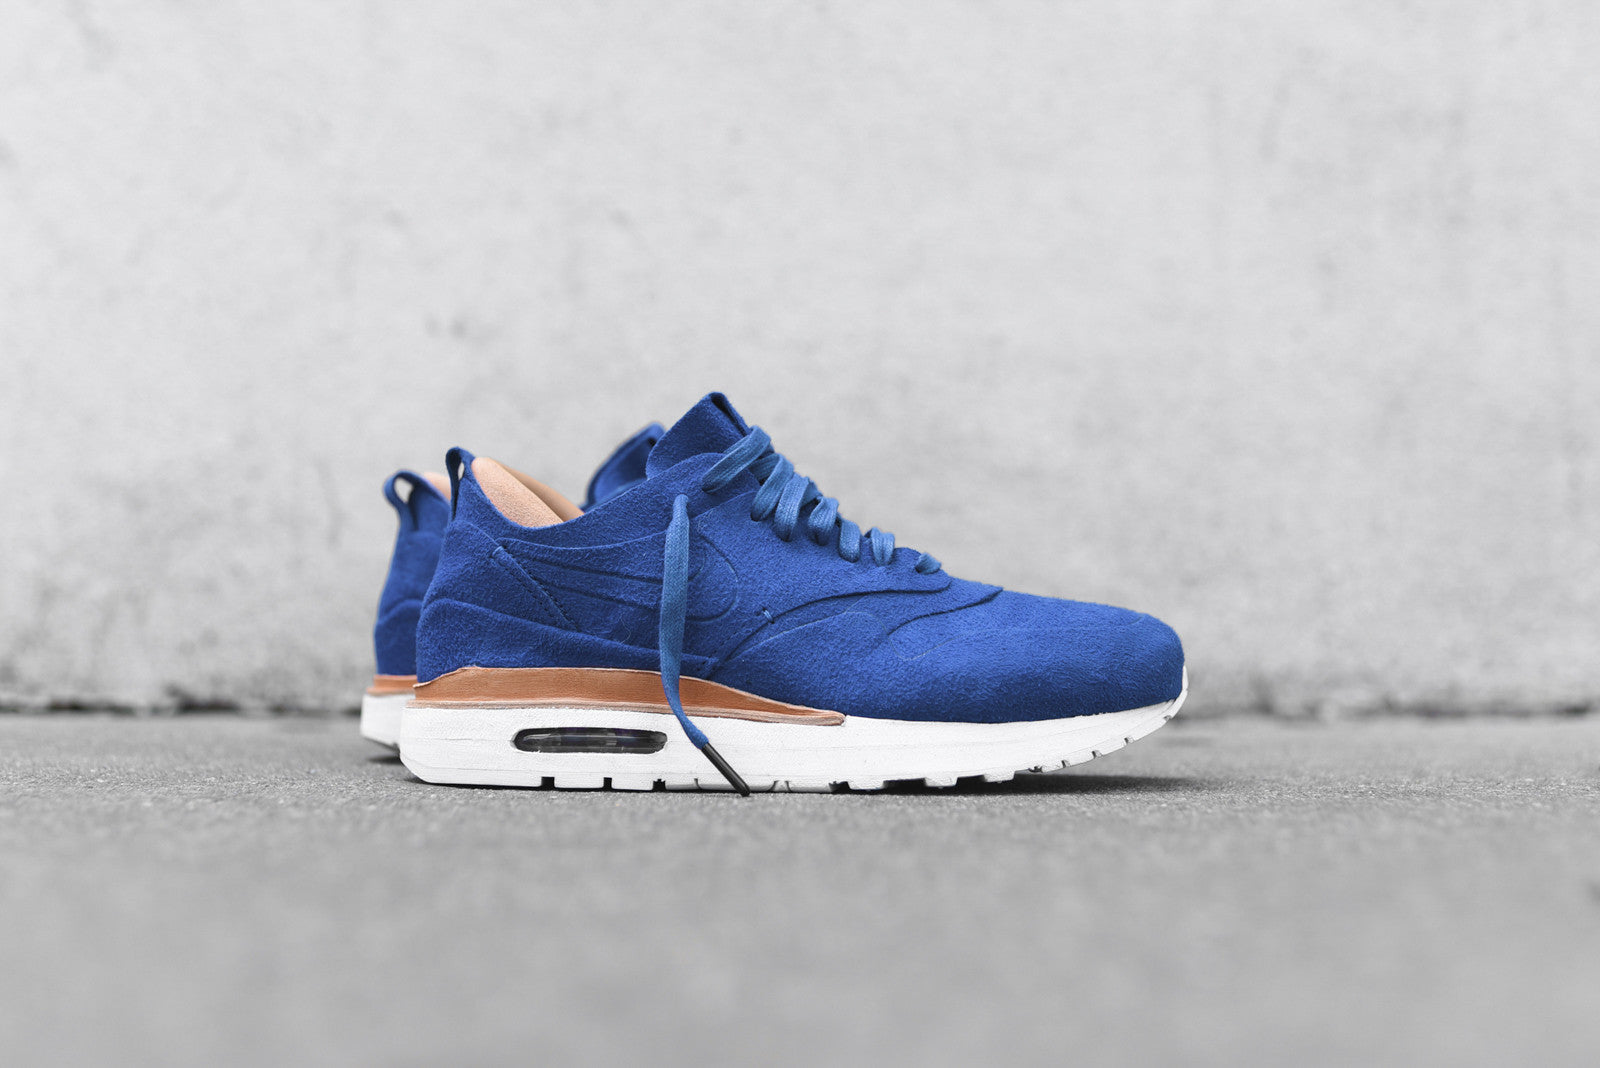 Nike Air Max 1 Royal - Game Royal